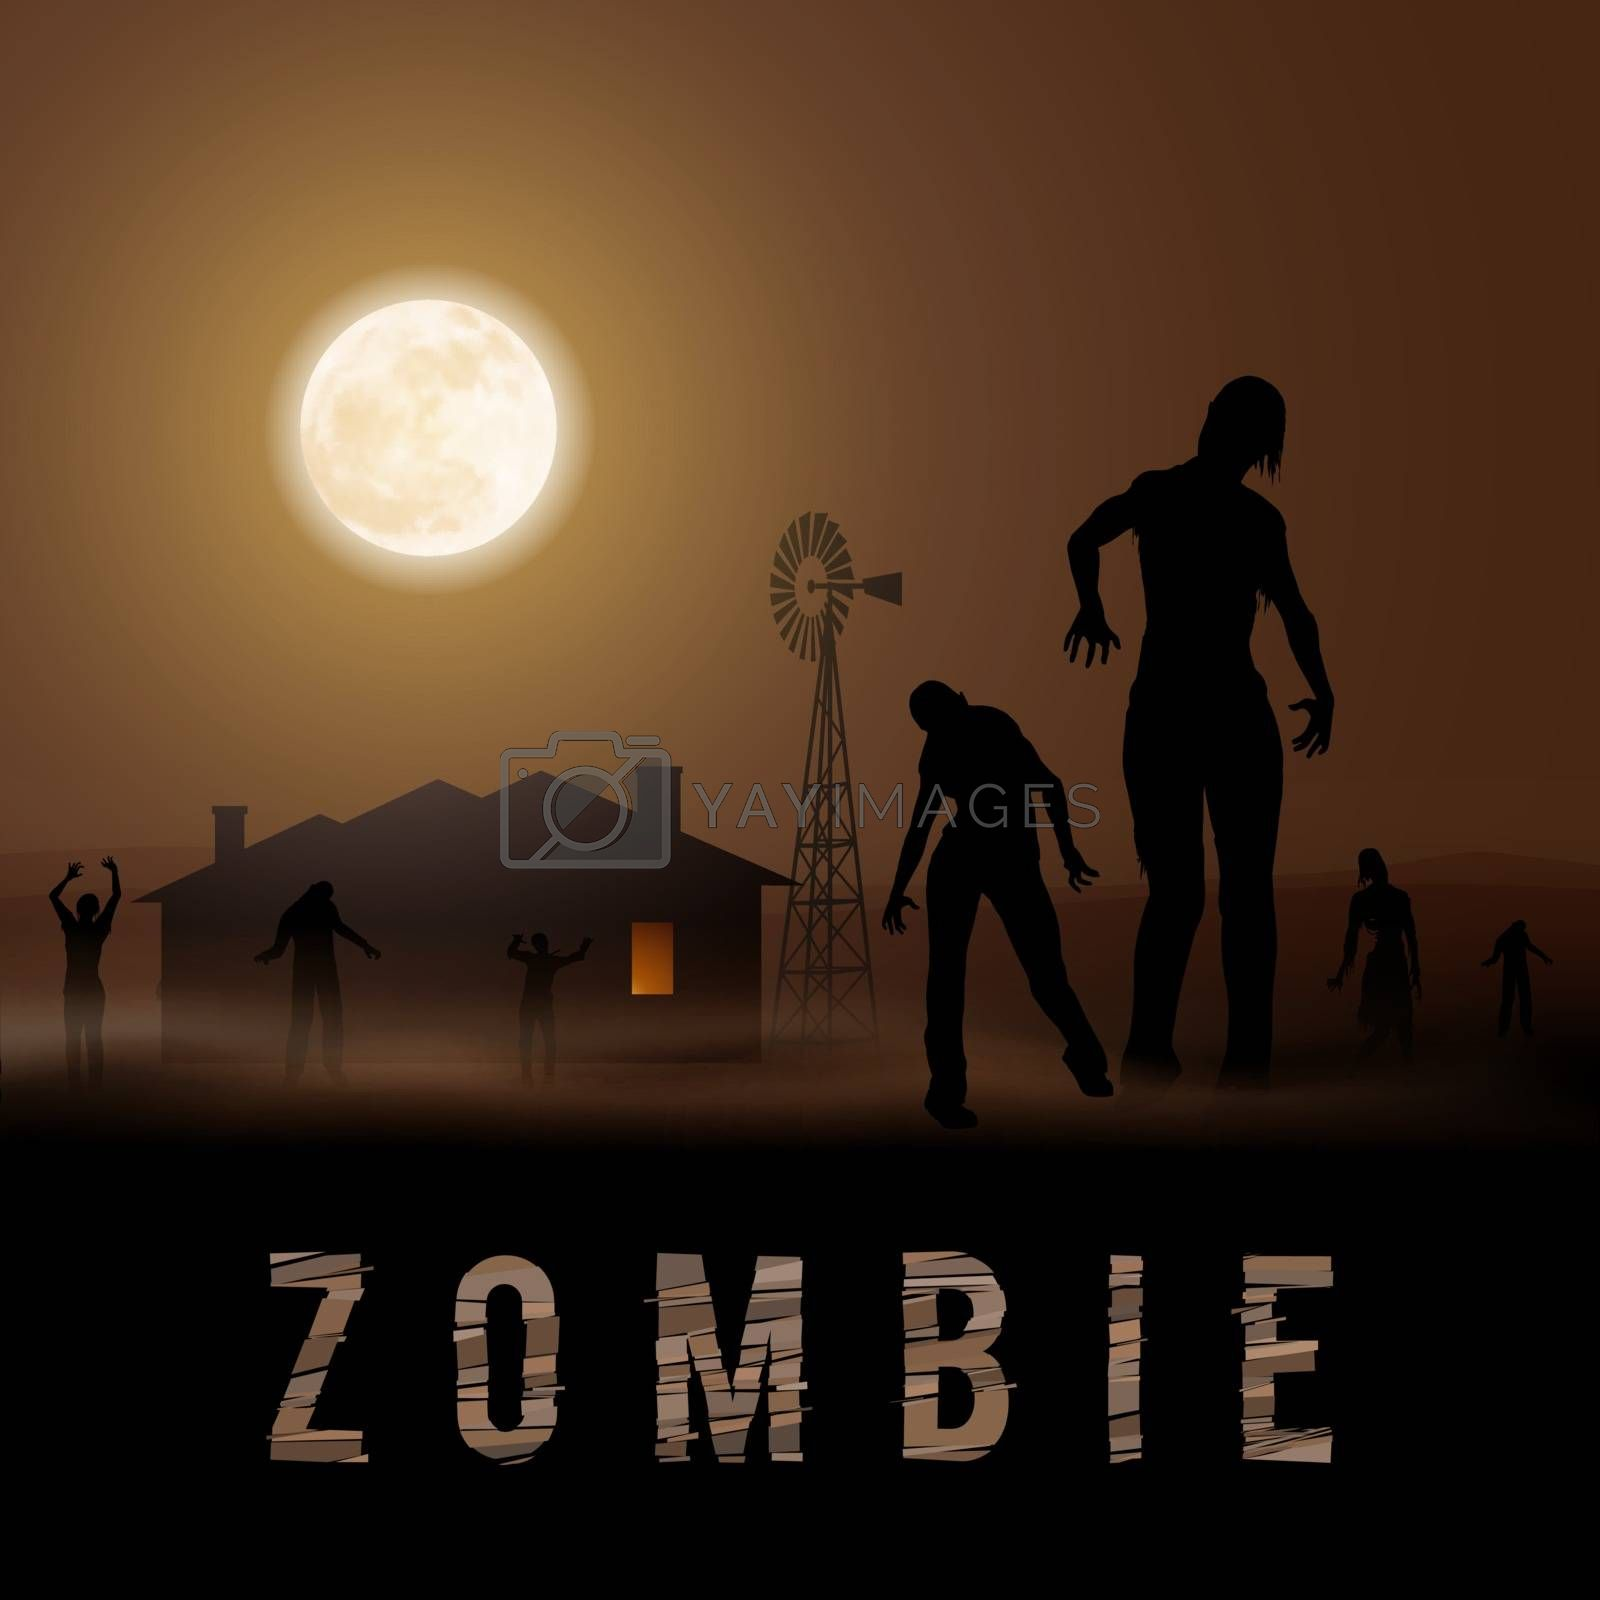 Zombie Walking out From House. Silhouettes Illustration for Halloween Poster